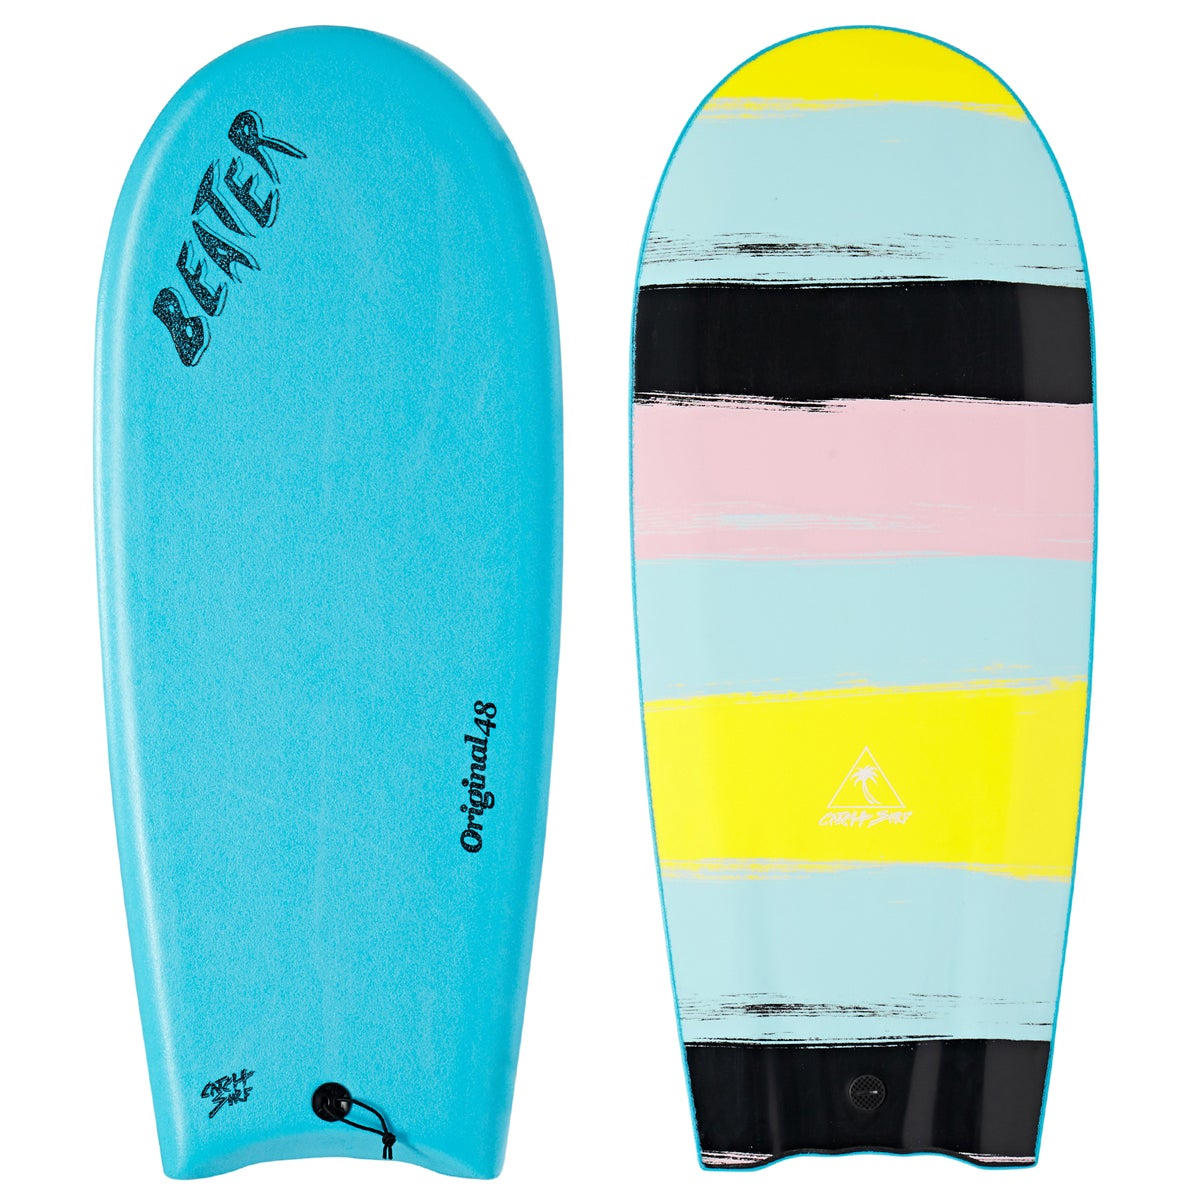 Catch Surf Beater Original Finless Surfboard - Blue Curacao